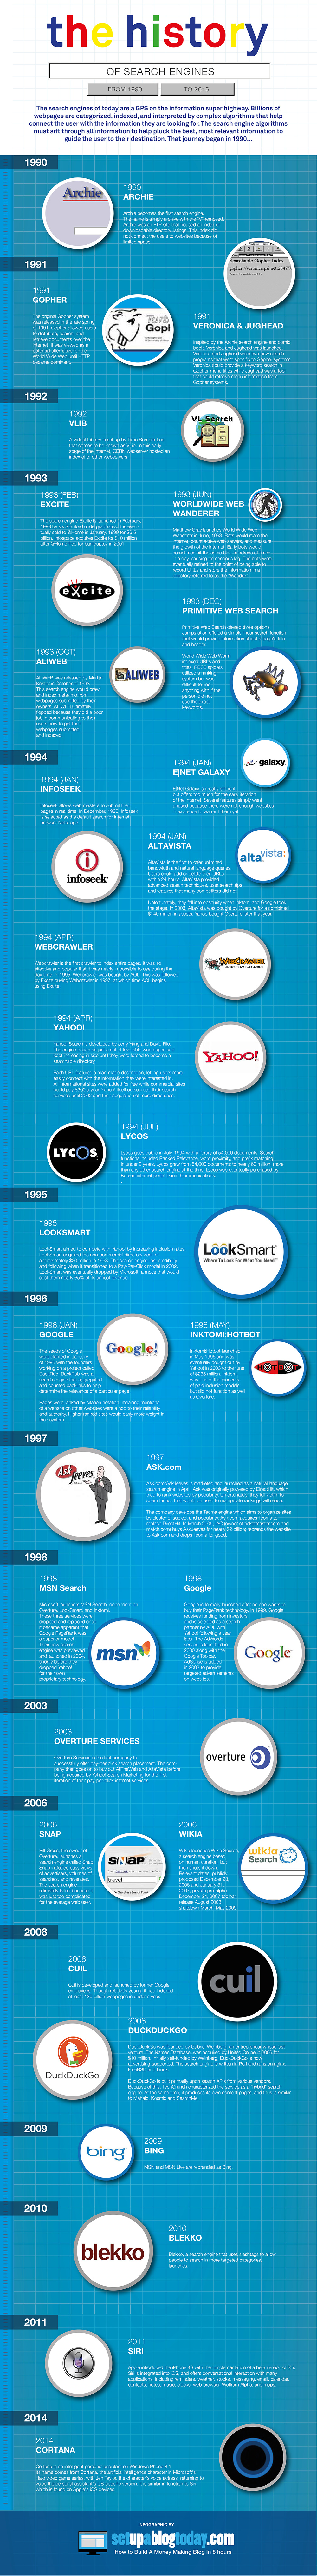 Search-Engine-History-Infographic